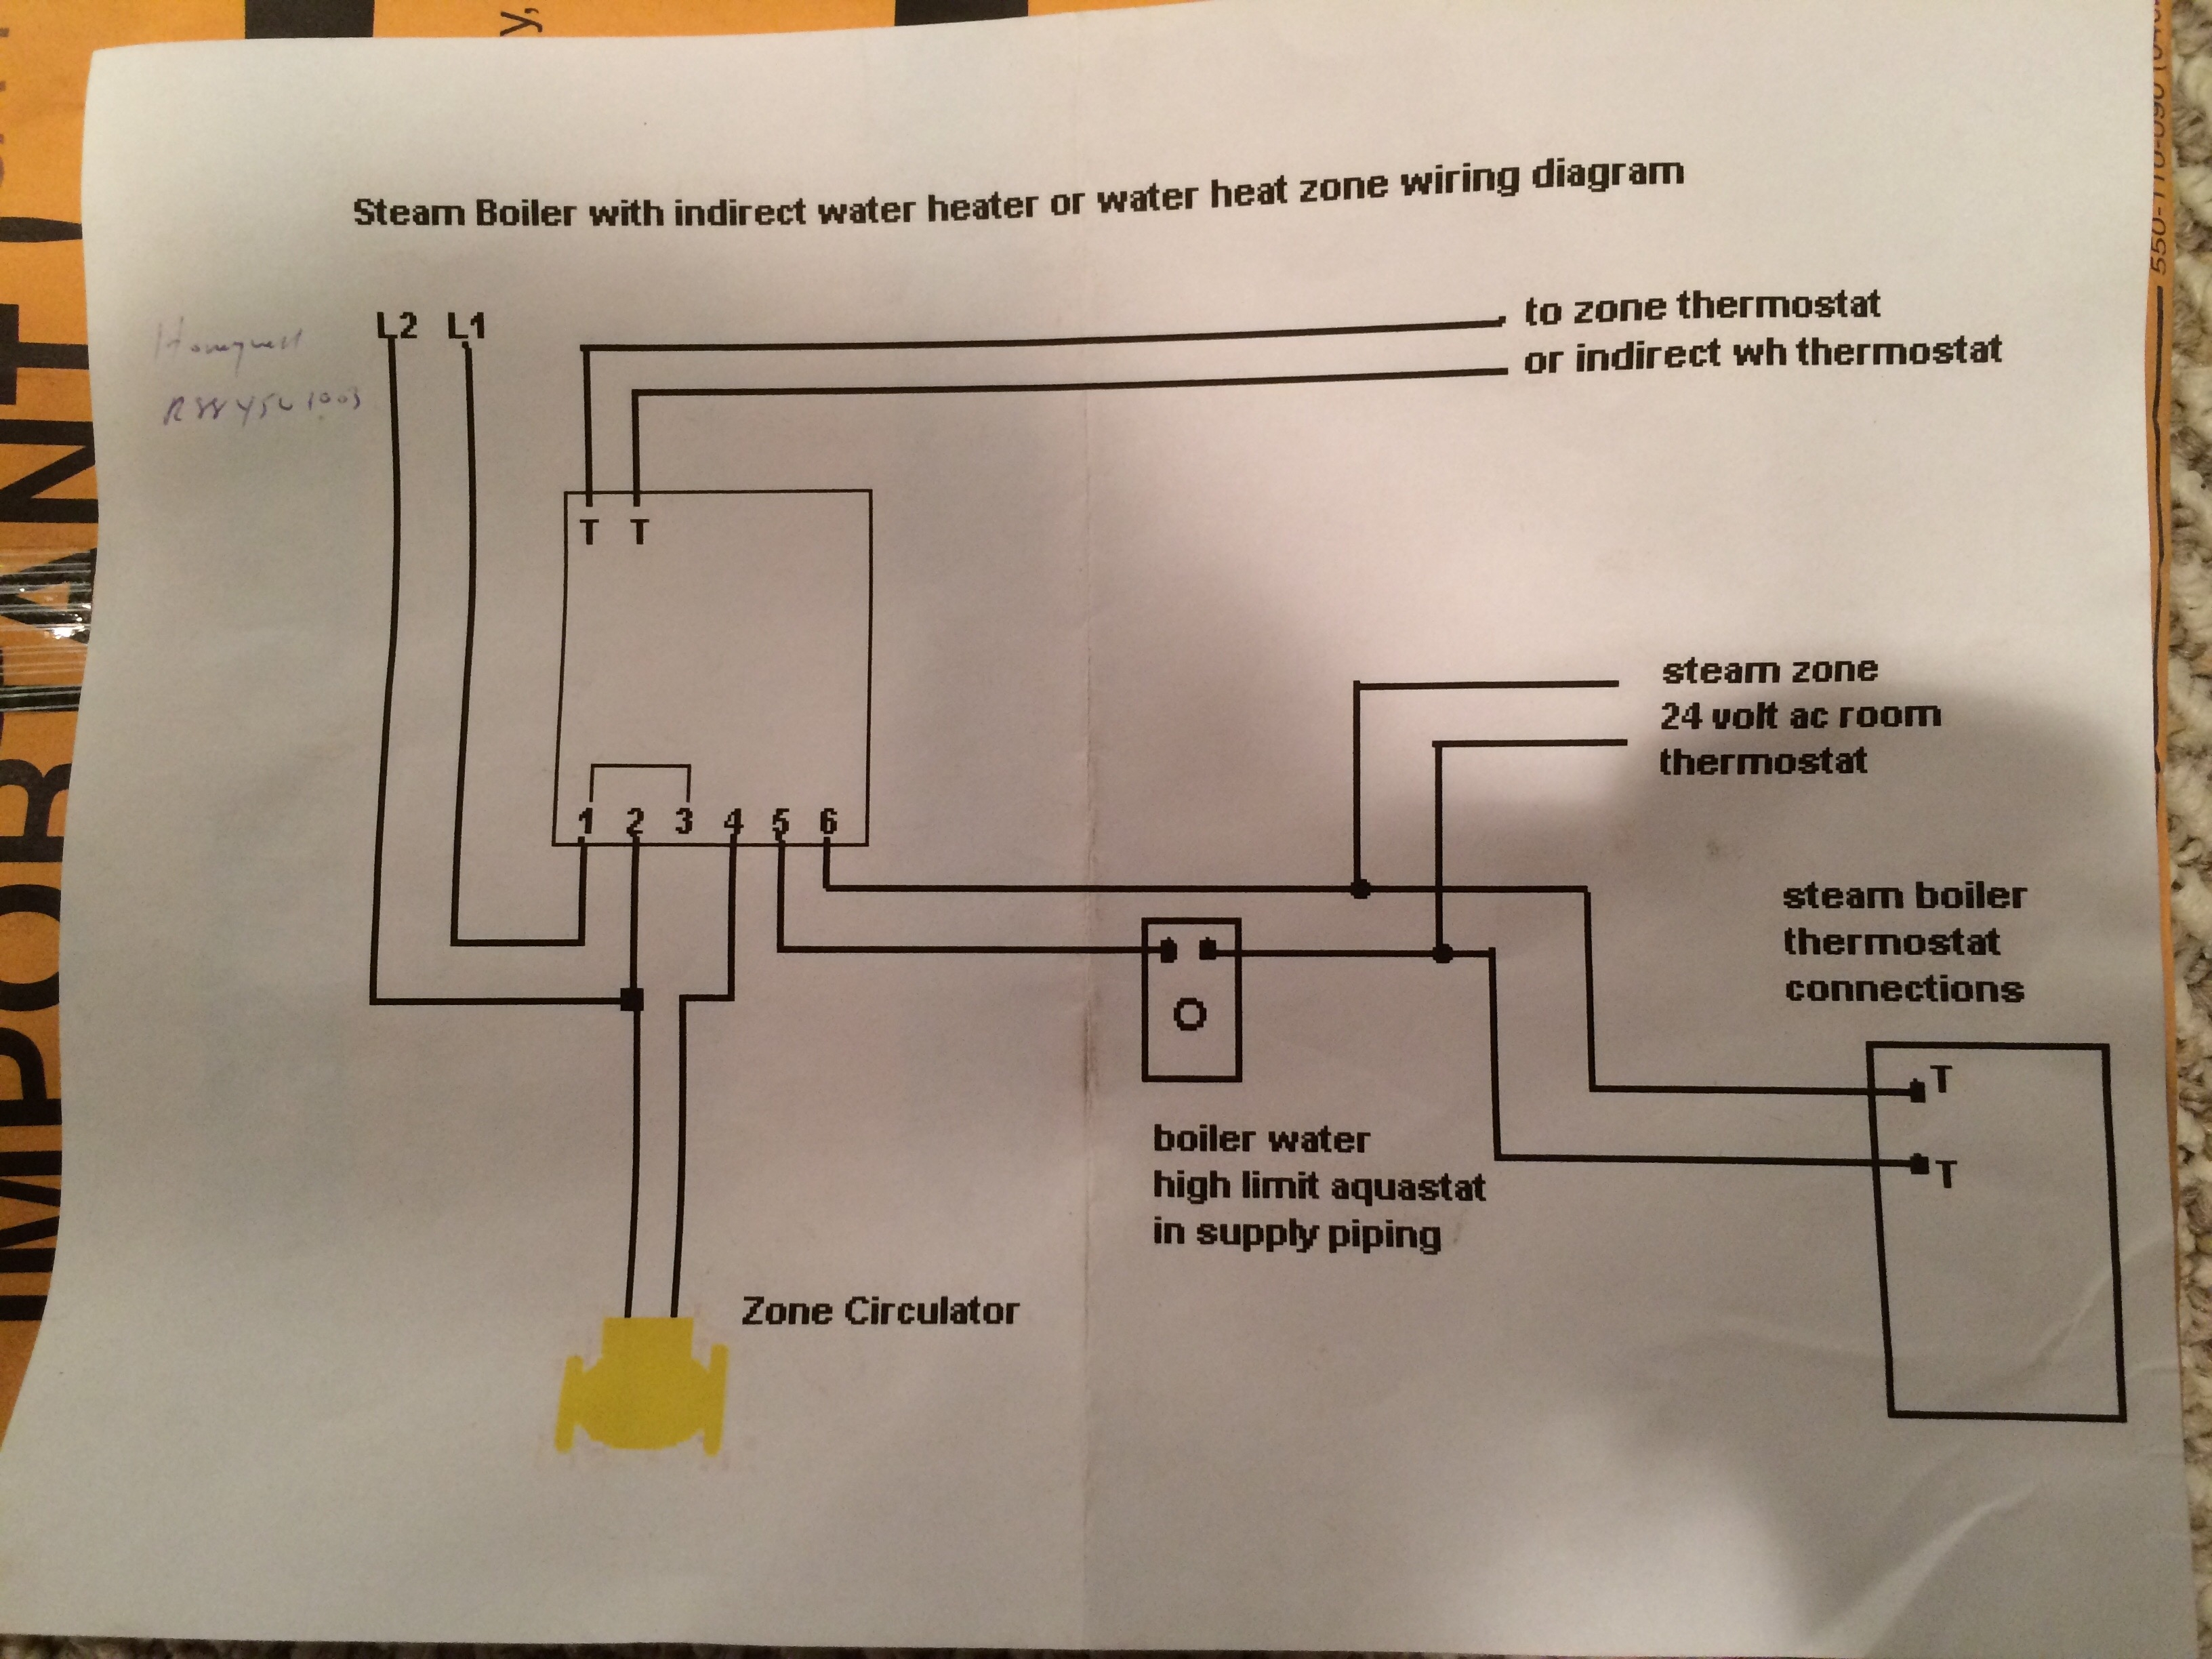 Steam Heat Diagram Great Design Of Wiring Utica Boiler Exchanger Piping Radiators